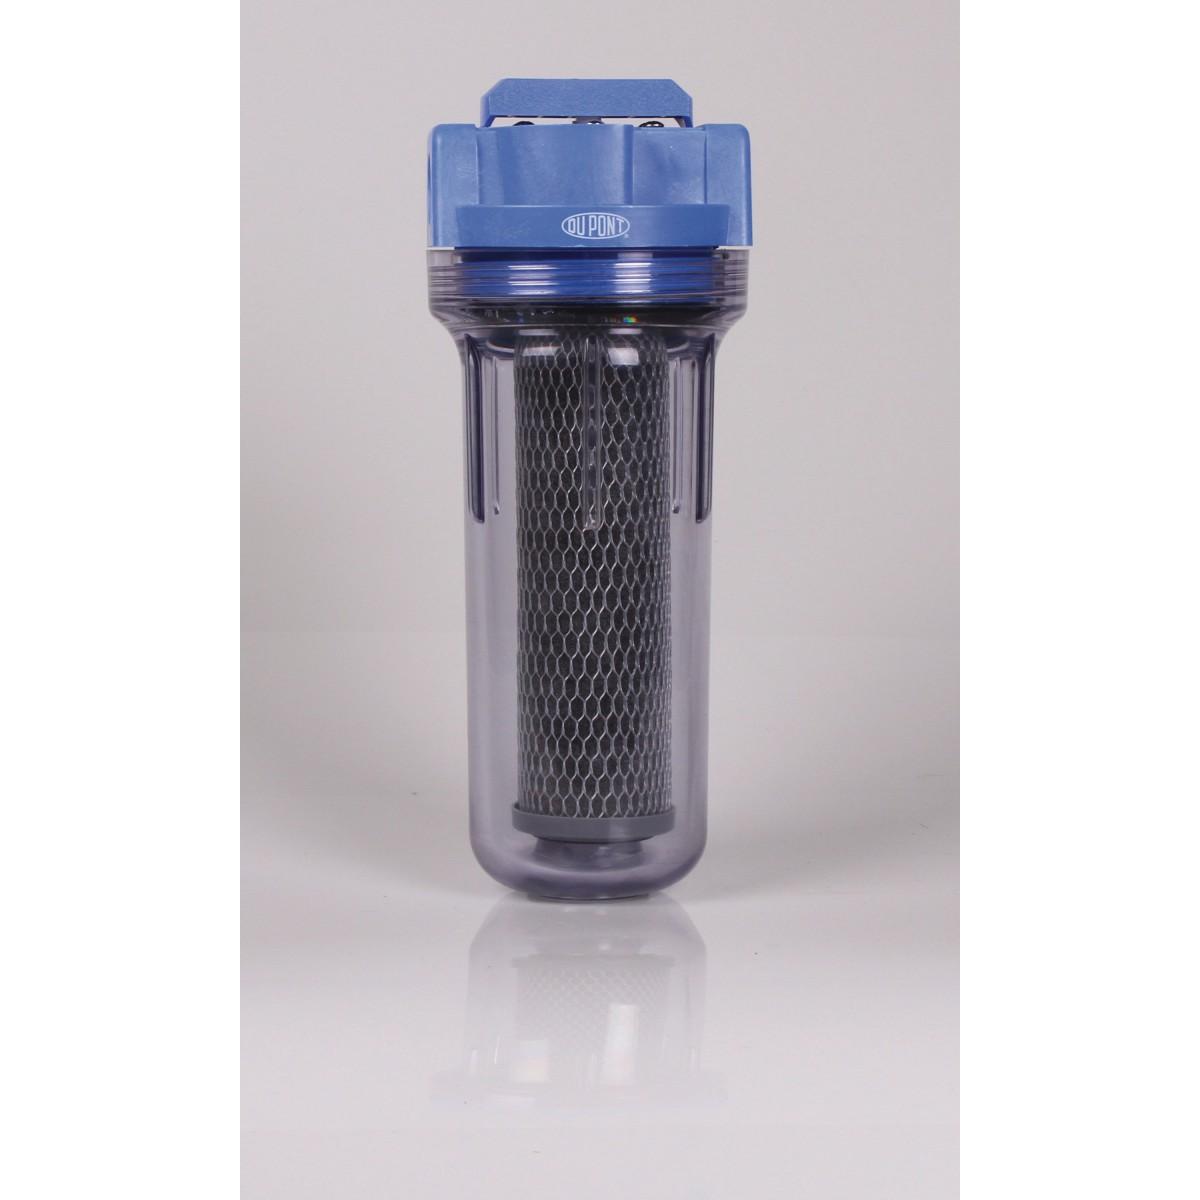 WFPF38001C DuPont Universal Whole House Water Filtration System